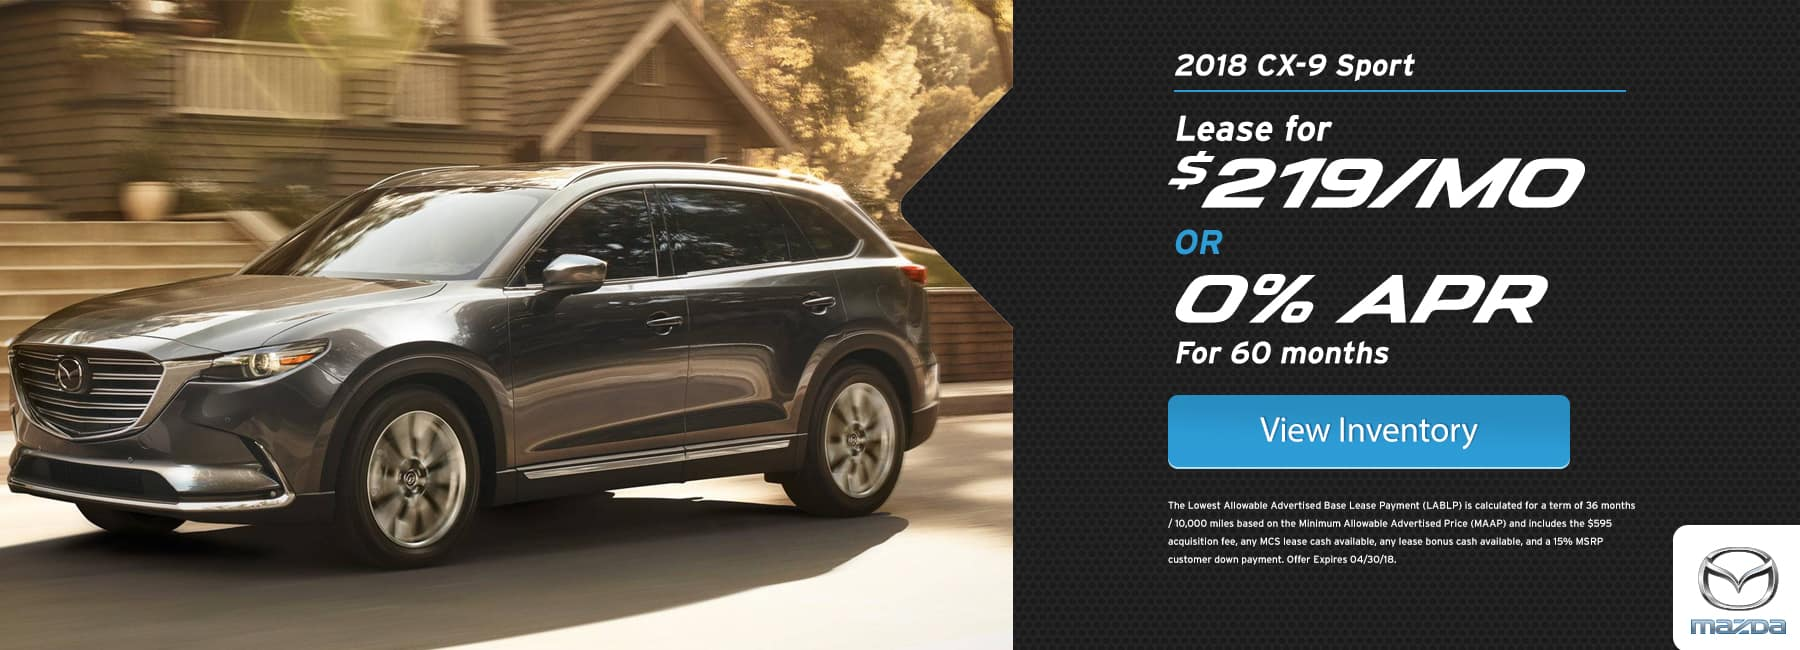 Mazda CX 9 April Offer